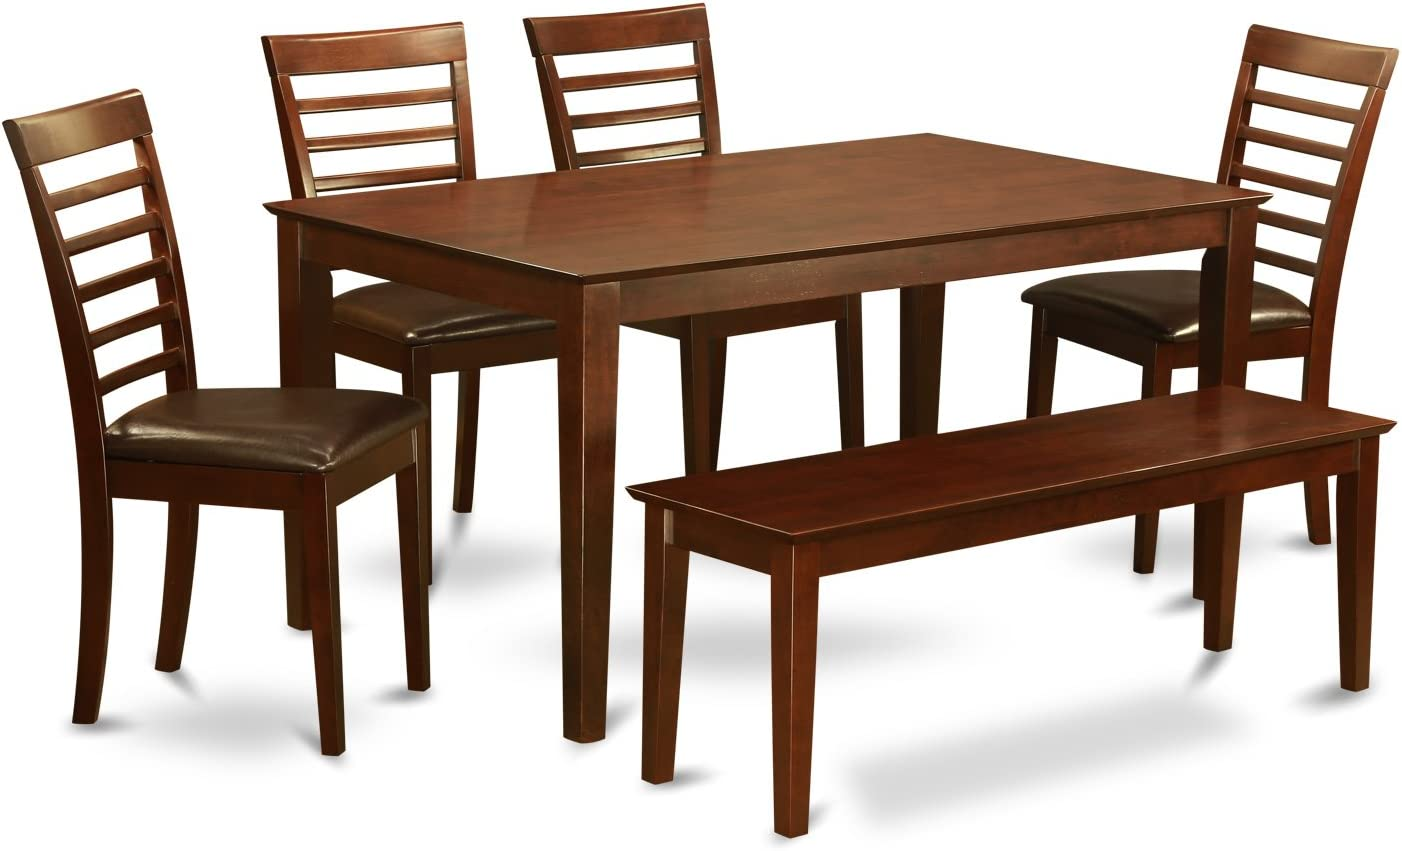 CAML6C-MAH-LC 6 PC Dining Table with bench set-Table and 4 Dining Chairs and Bench